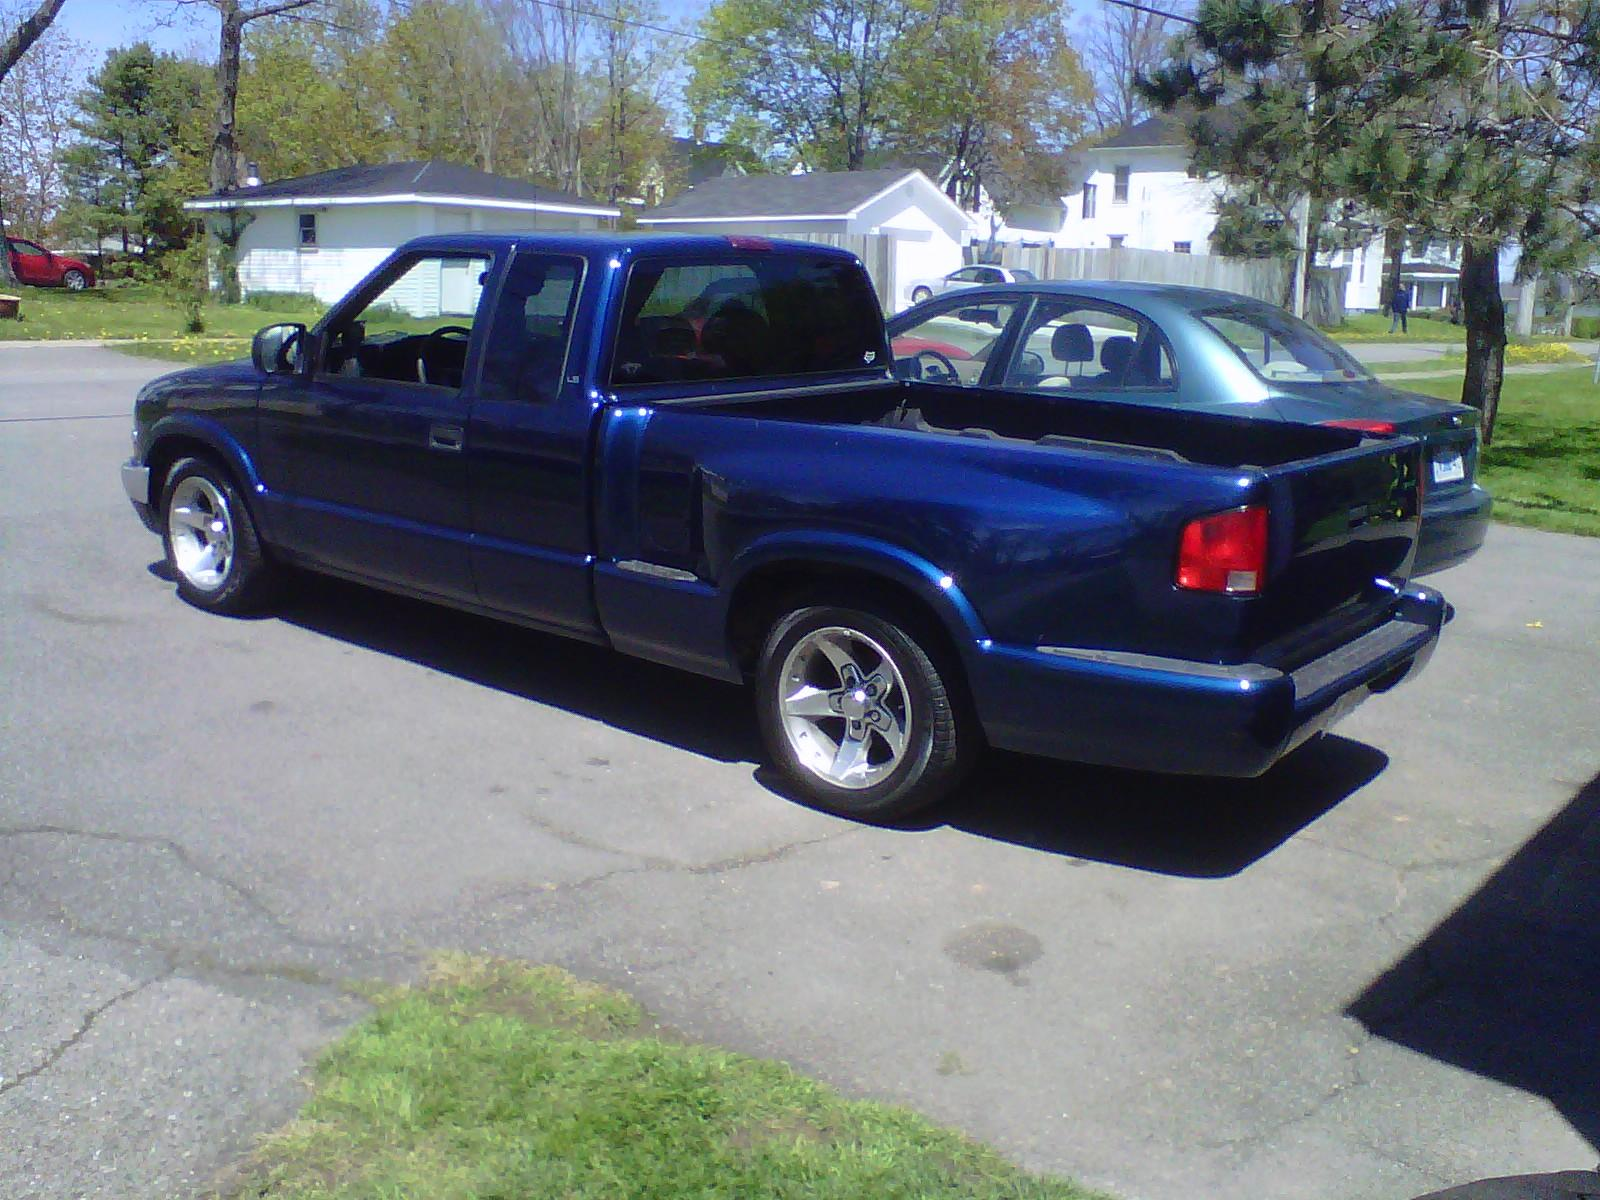 escort9901 2001 chevrolet s10 extended cabpickup specs photos modification info at cardomain. Black Bedroom Furniture Sets. Home Design Ideas